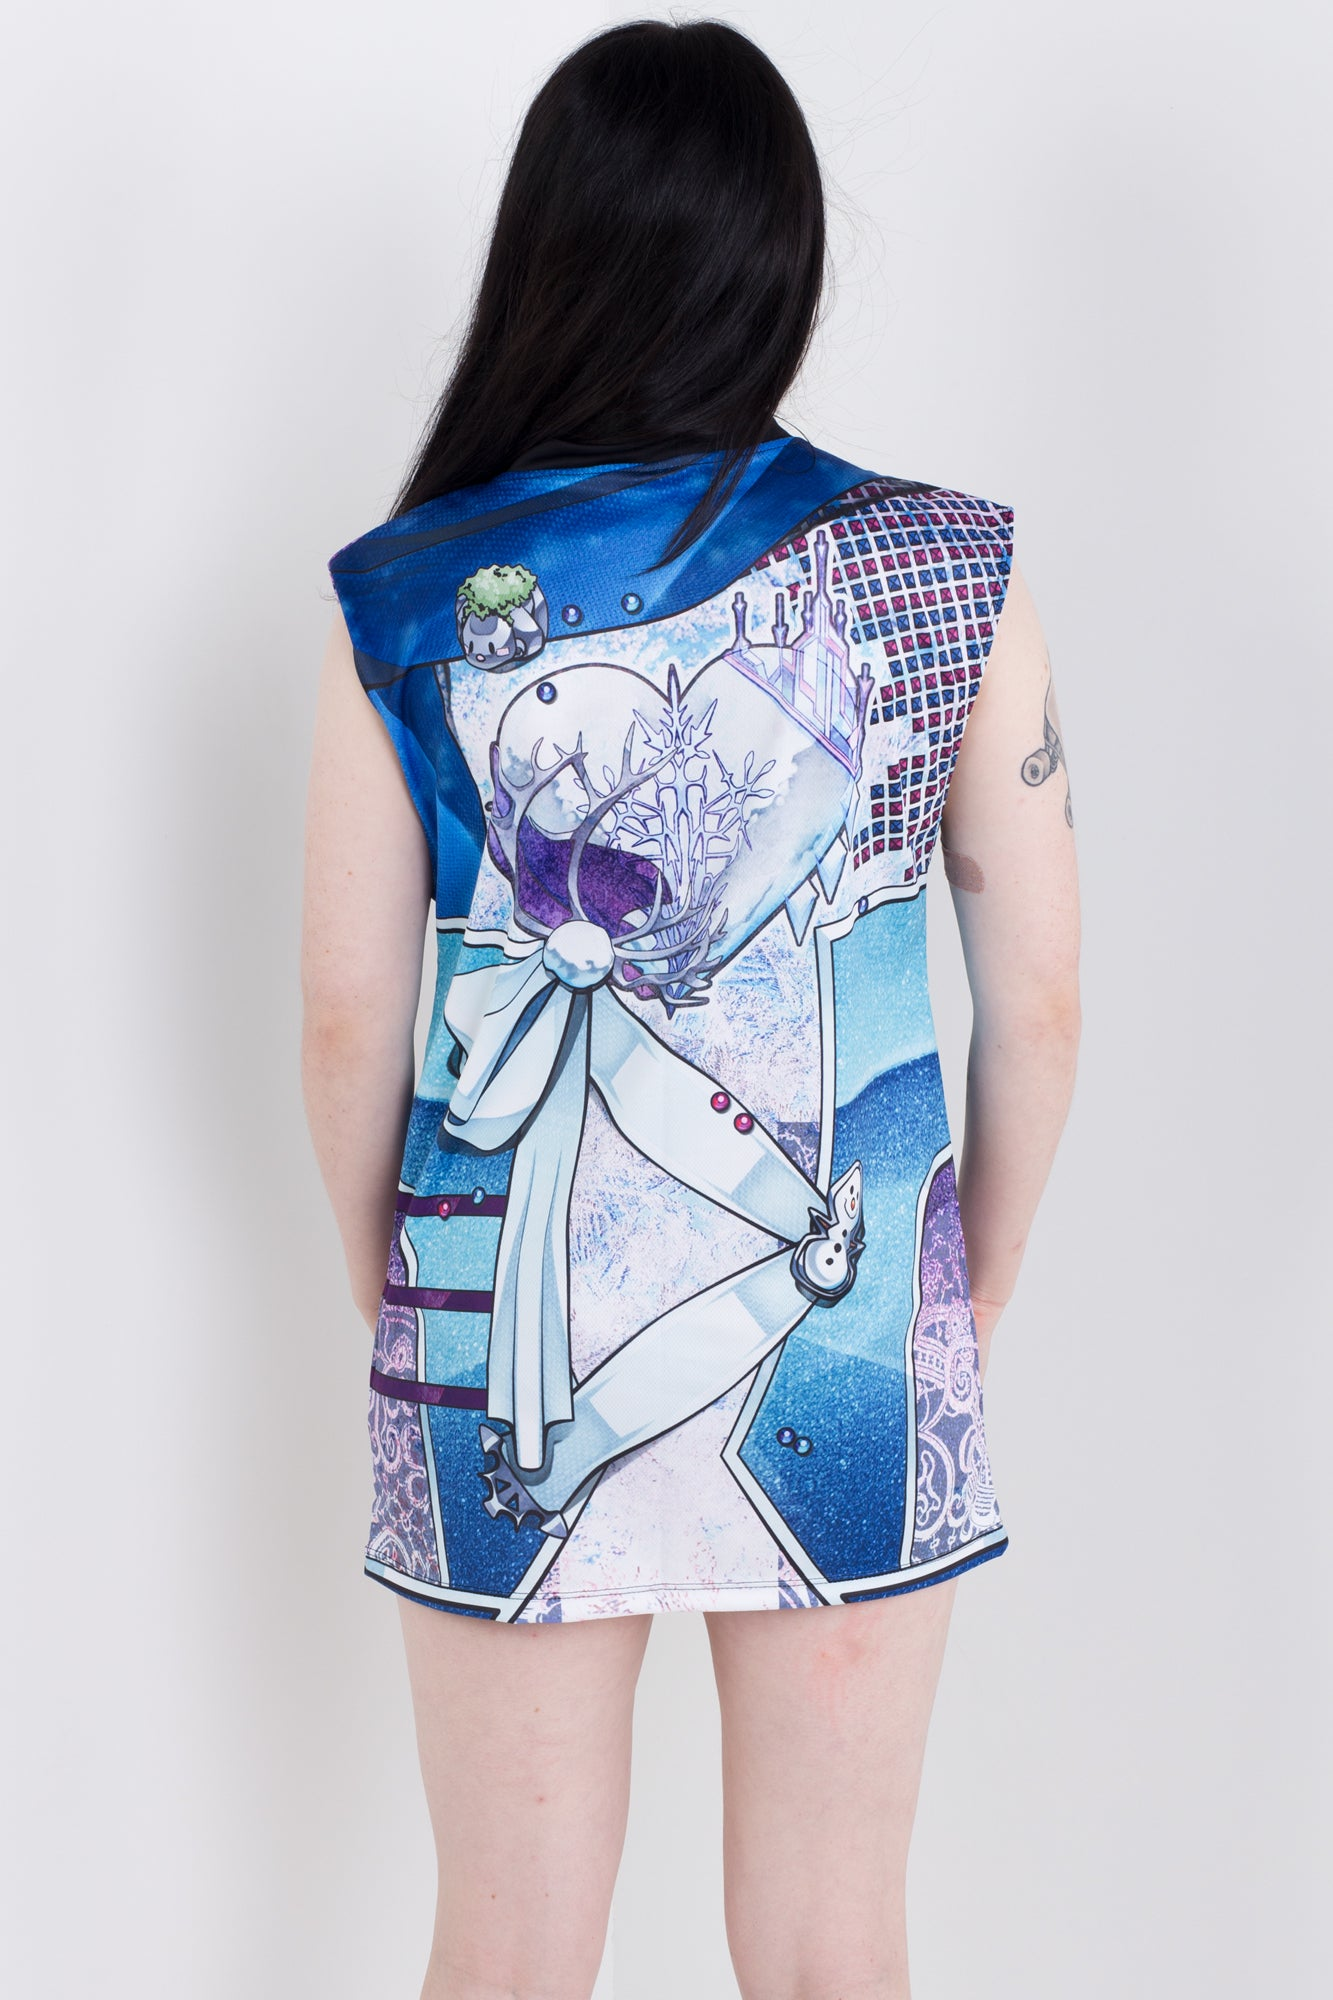 Punk Princess Elsa Sleeveless Hail Mary